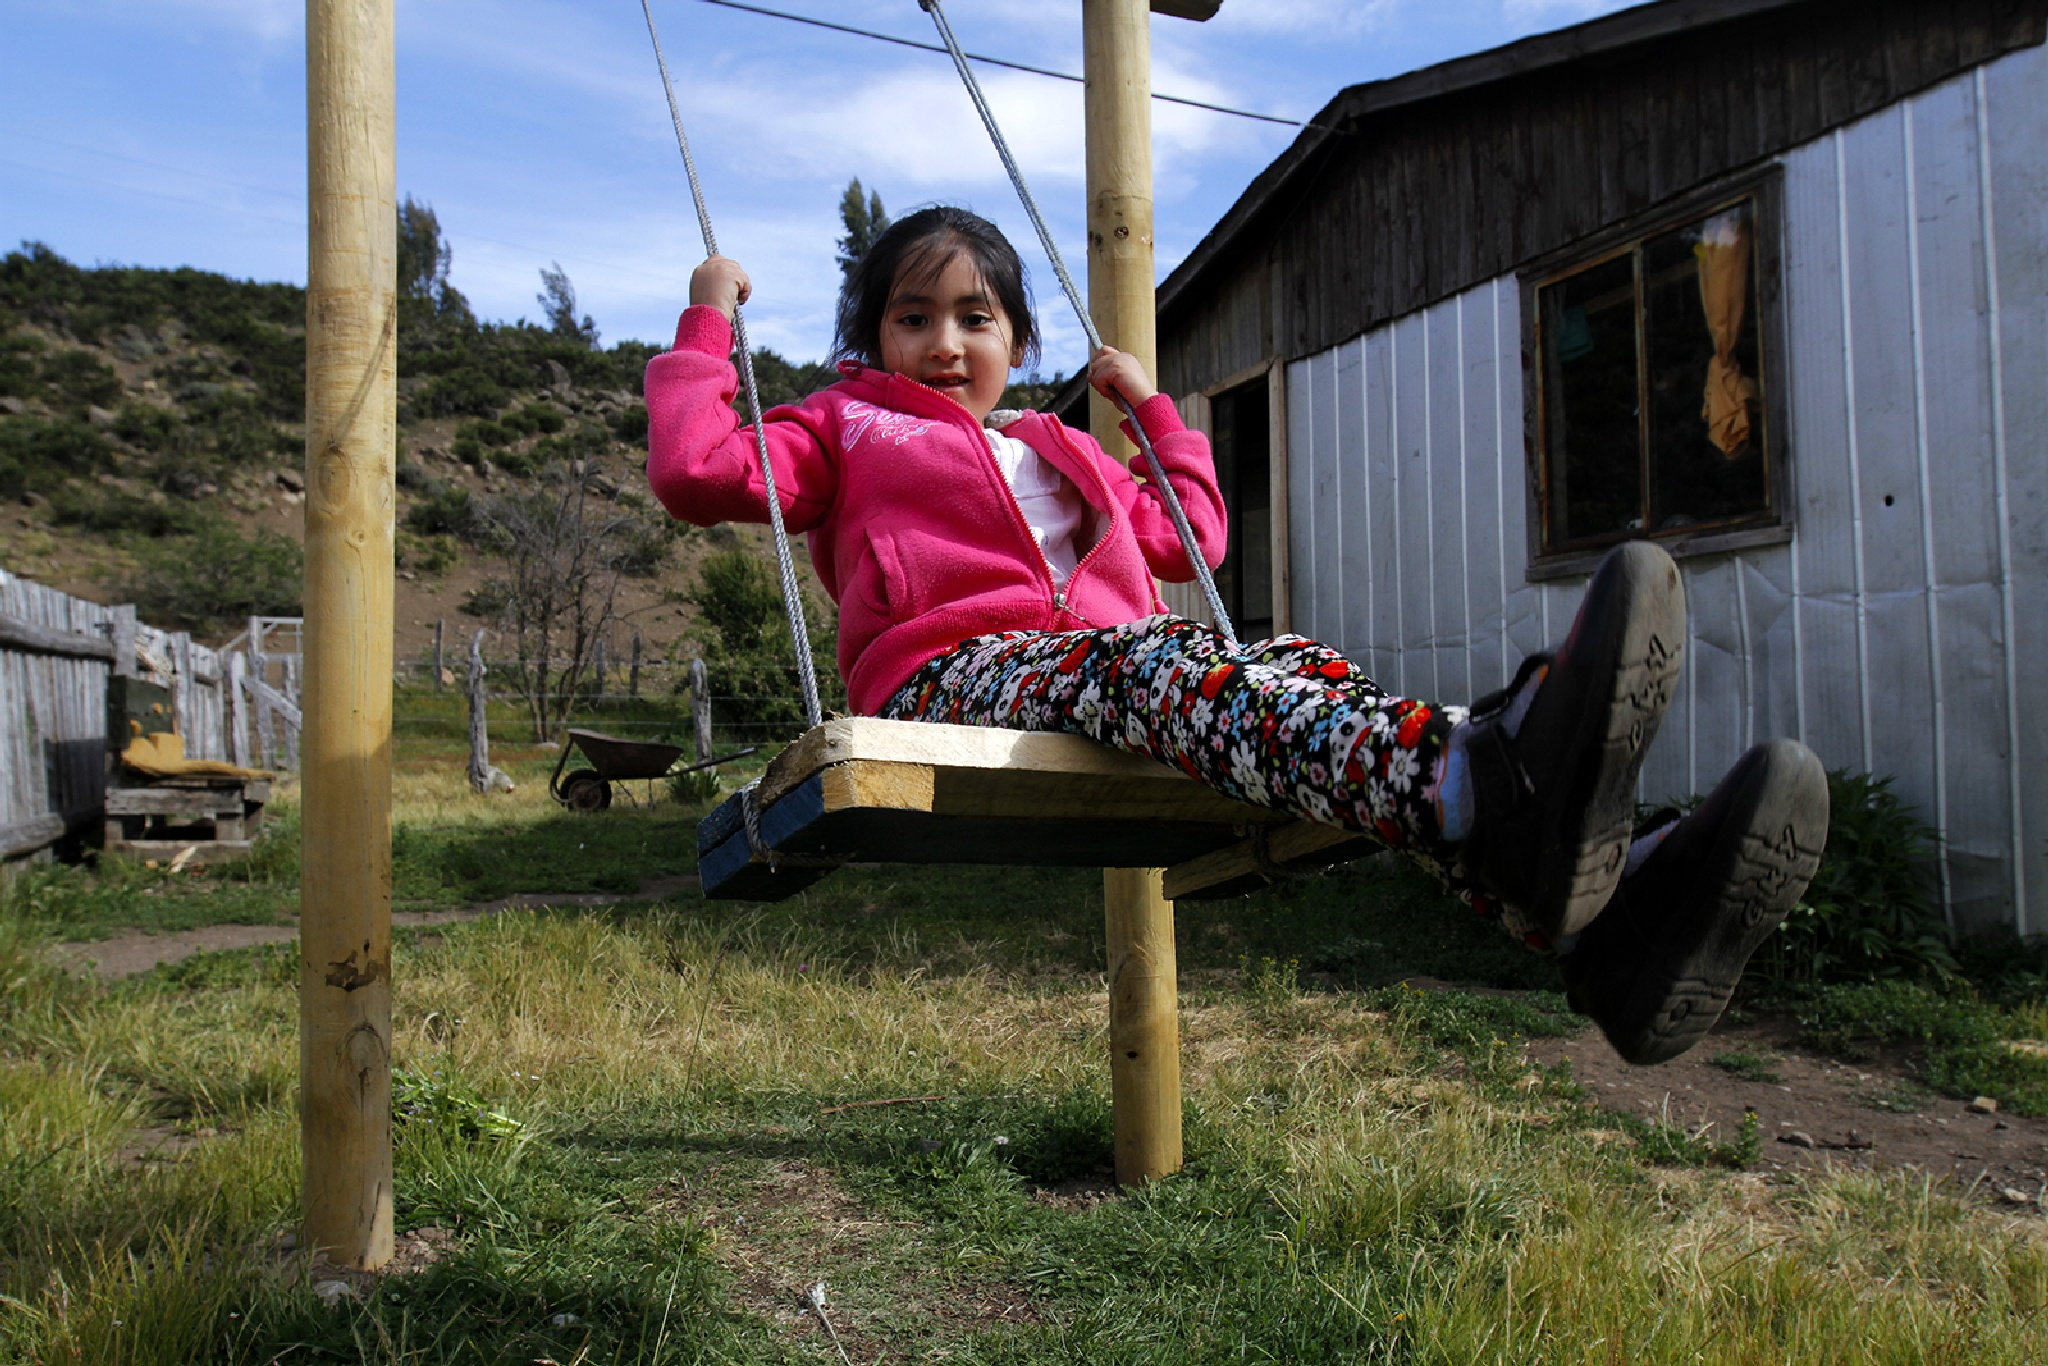 Pewenche girl enjoying her swing - Niña pewenche disfrutando su columpio by rolooyarzun